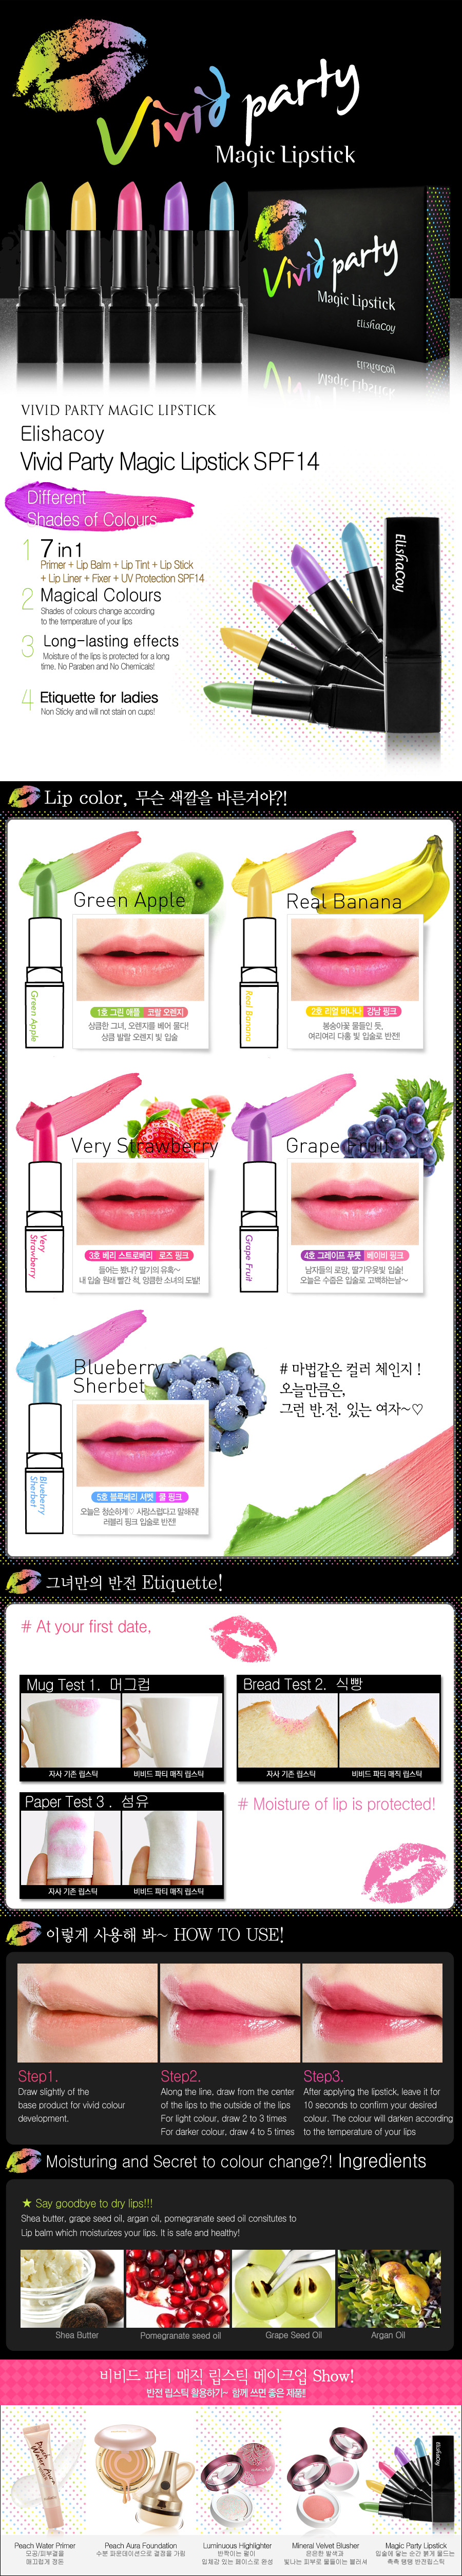 Vivid Party Magic Lipstick #Grapefruit